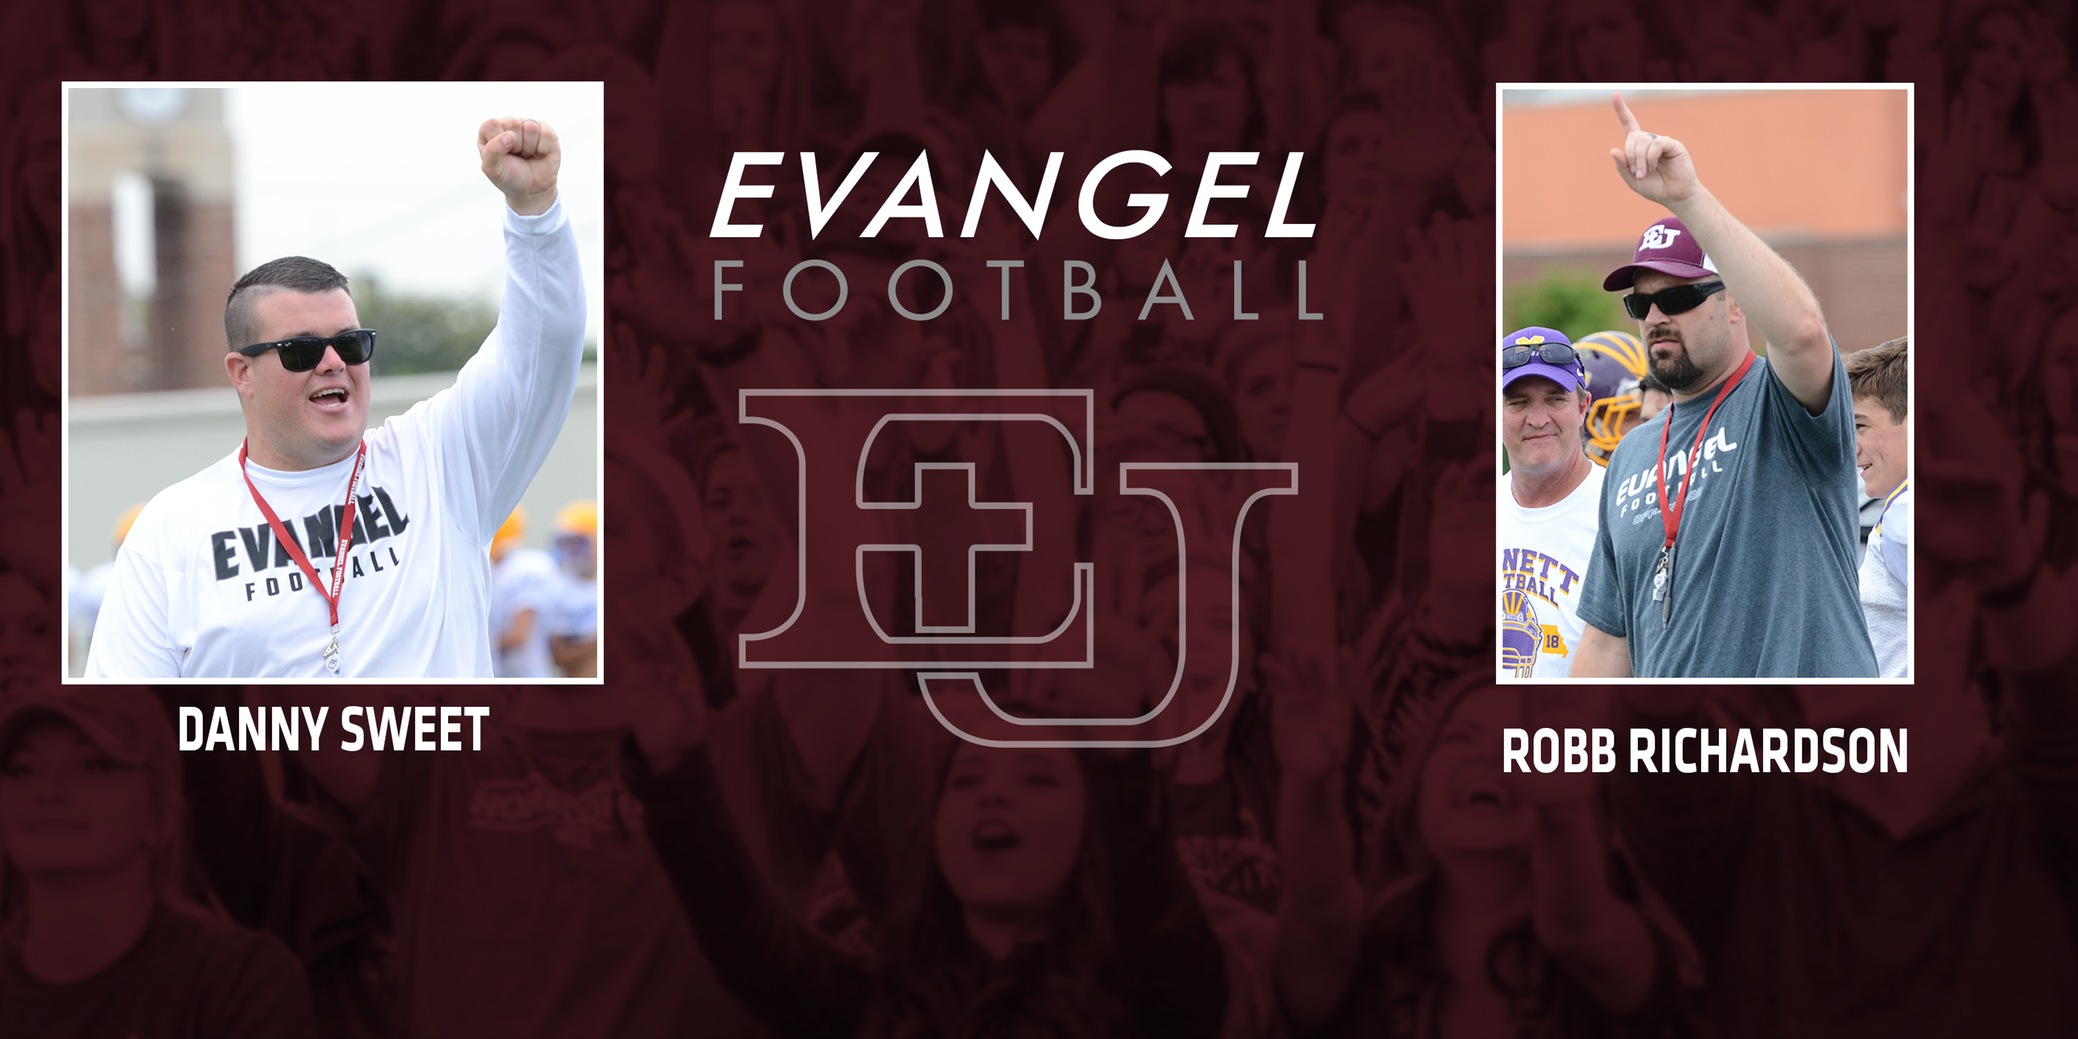 Evangel Football Adds Former Players Richardson and Sweet to Coaching Staff